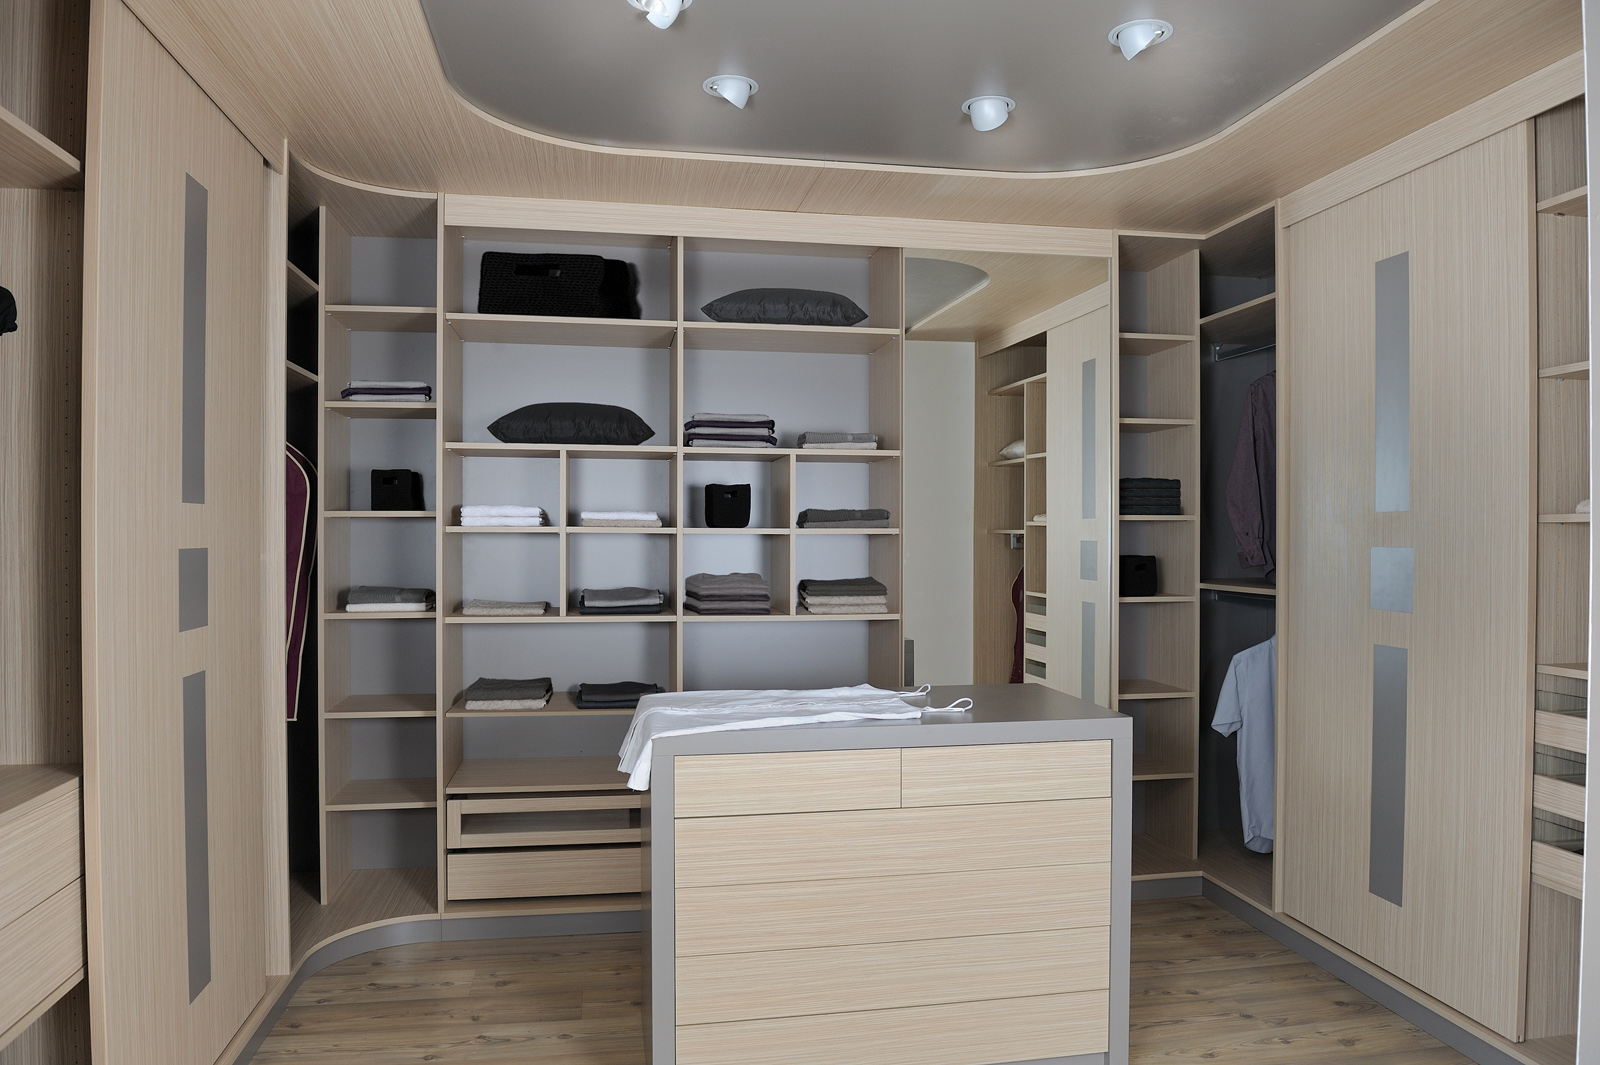 Model De Dressing Modele Dressing 2 Cuisines Couloir